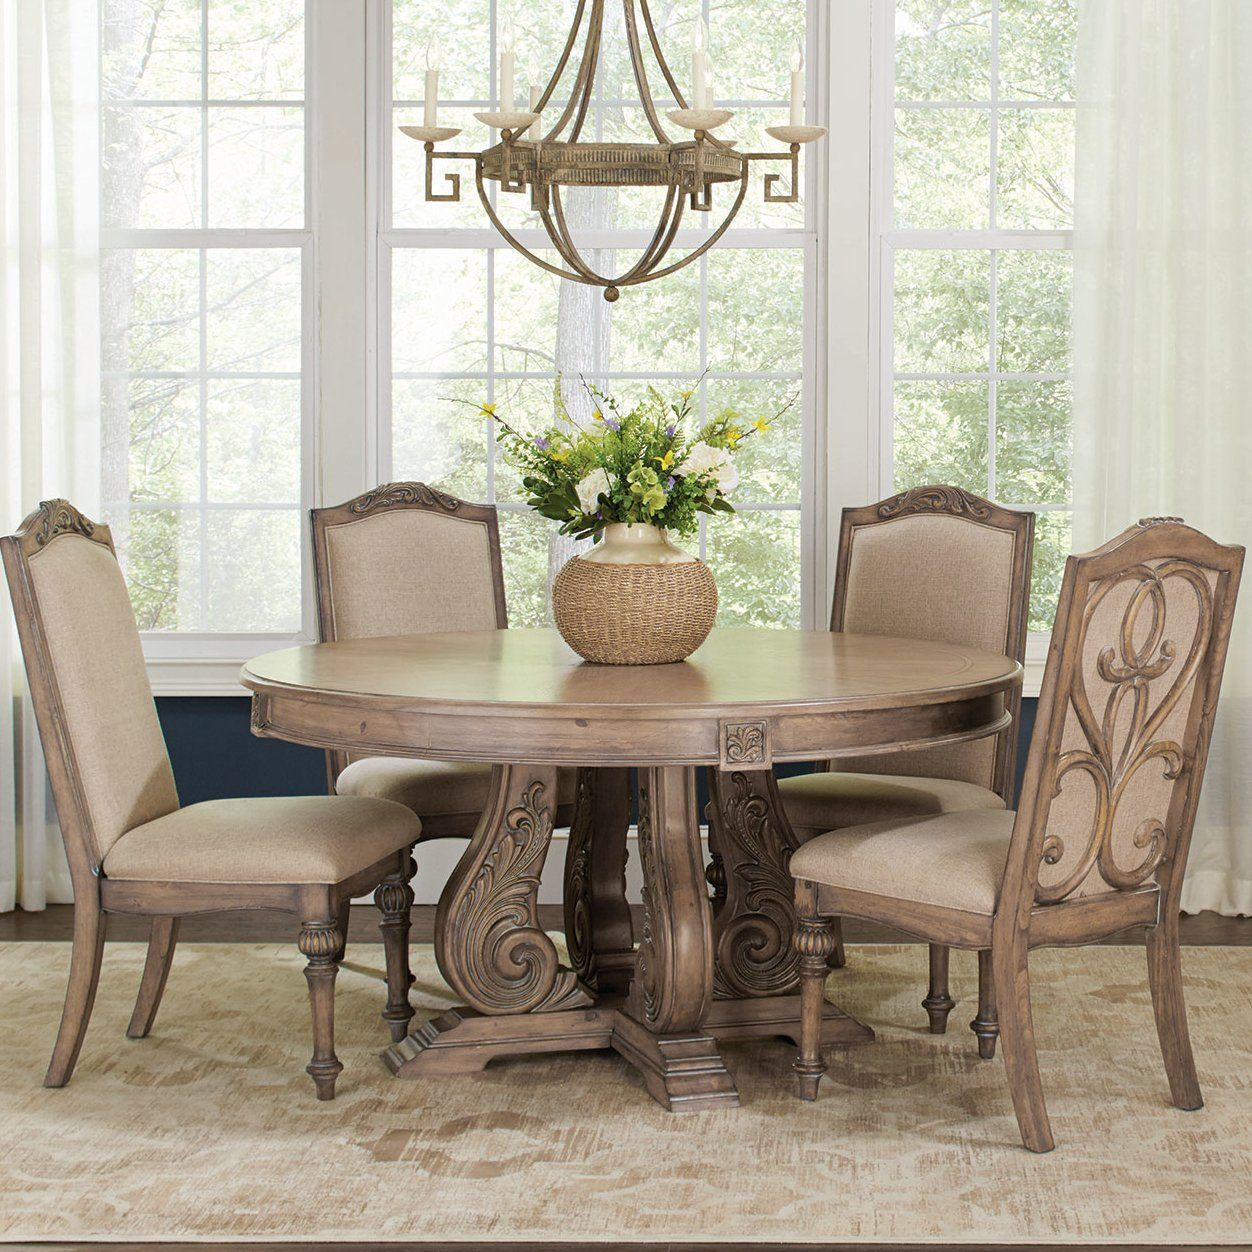 George Dining Table | Round dining room sets, Formal ...